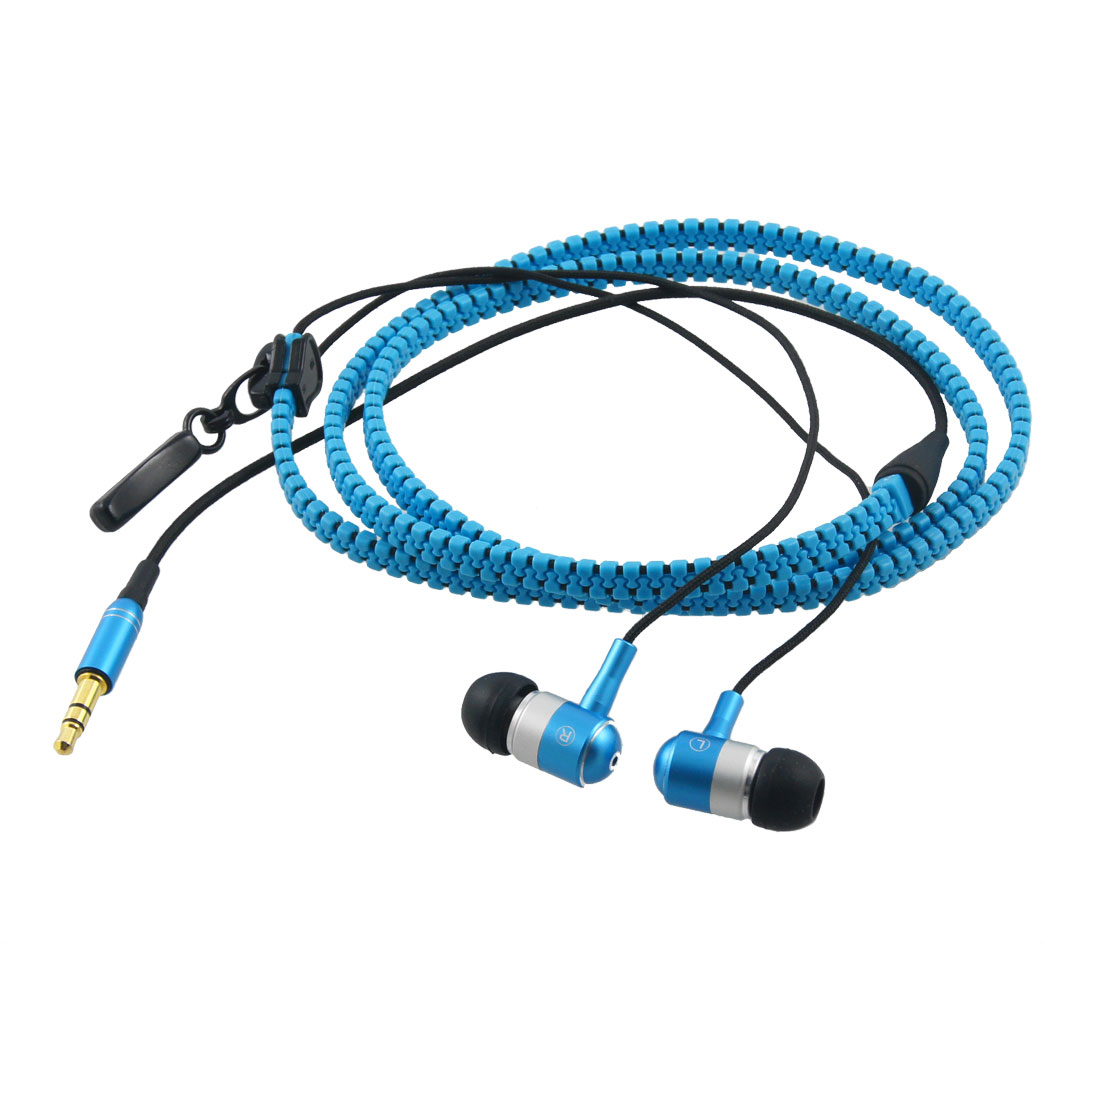 3.5mm Jack Silicone Earbuds Blue Black In Ear Earphone for iPhone 4GS iPad 3